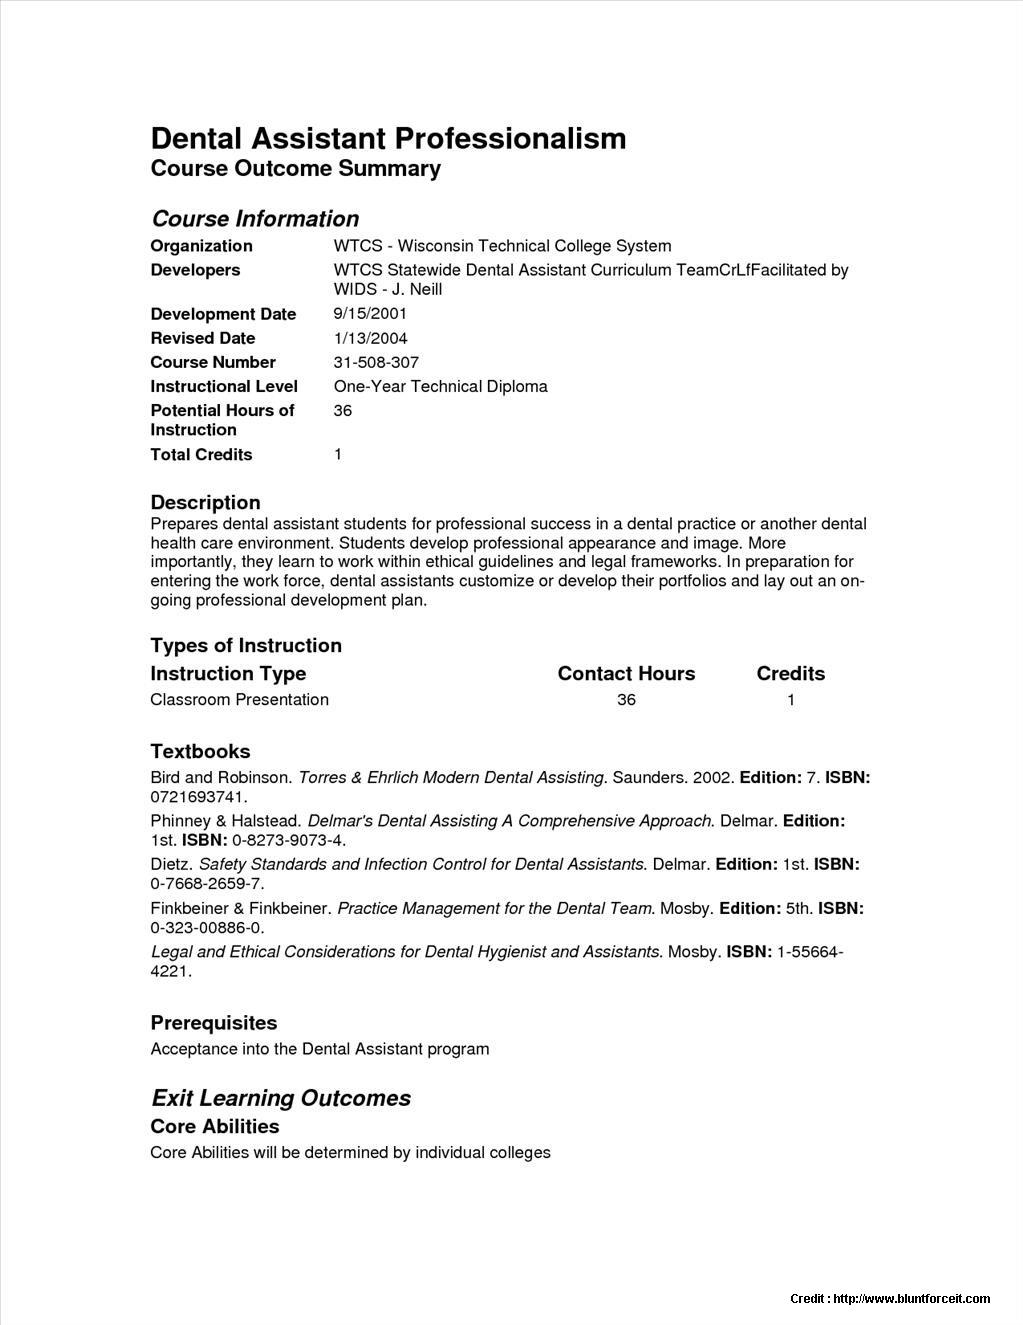 Sample Resume for Dental assistant with No Experience - Sample Resume for Dental assistant with No Experience